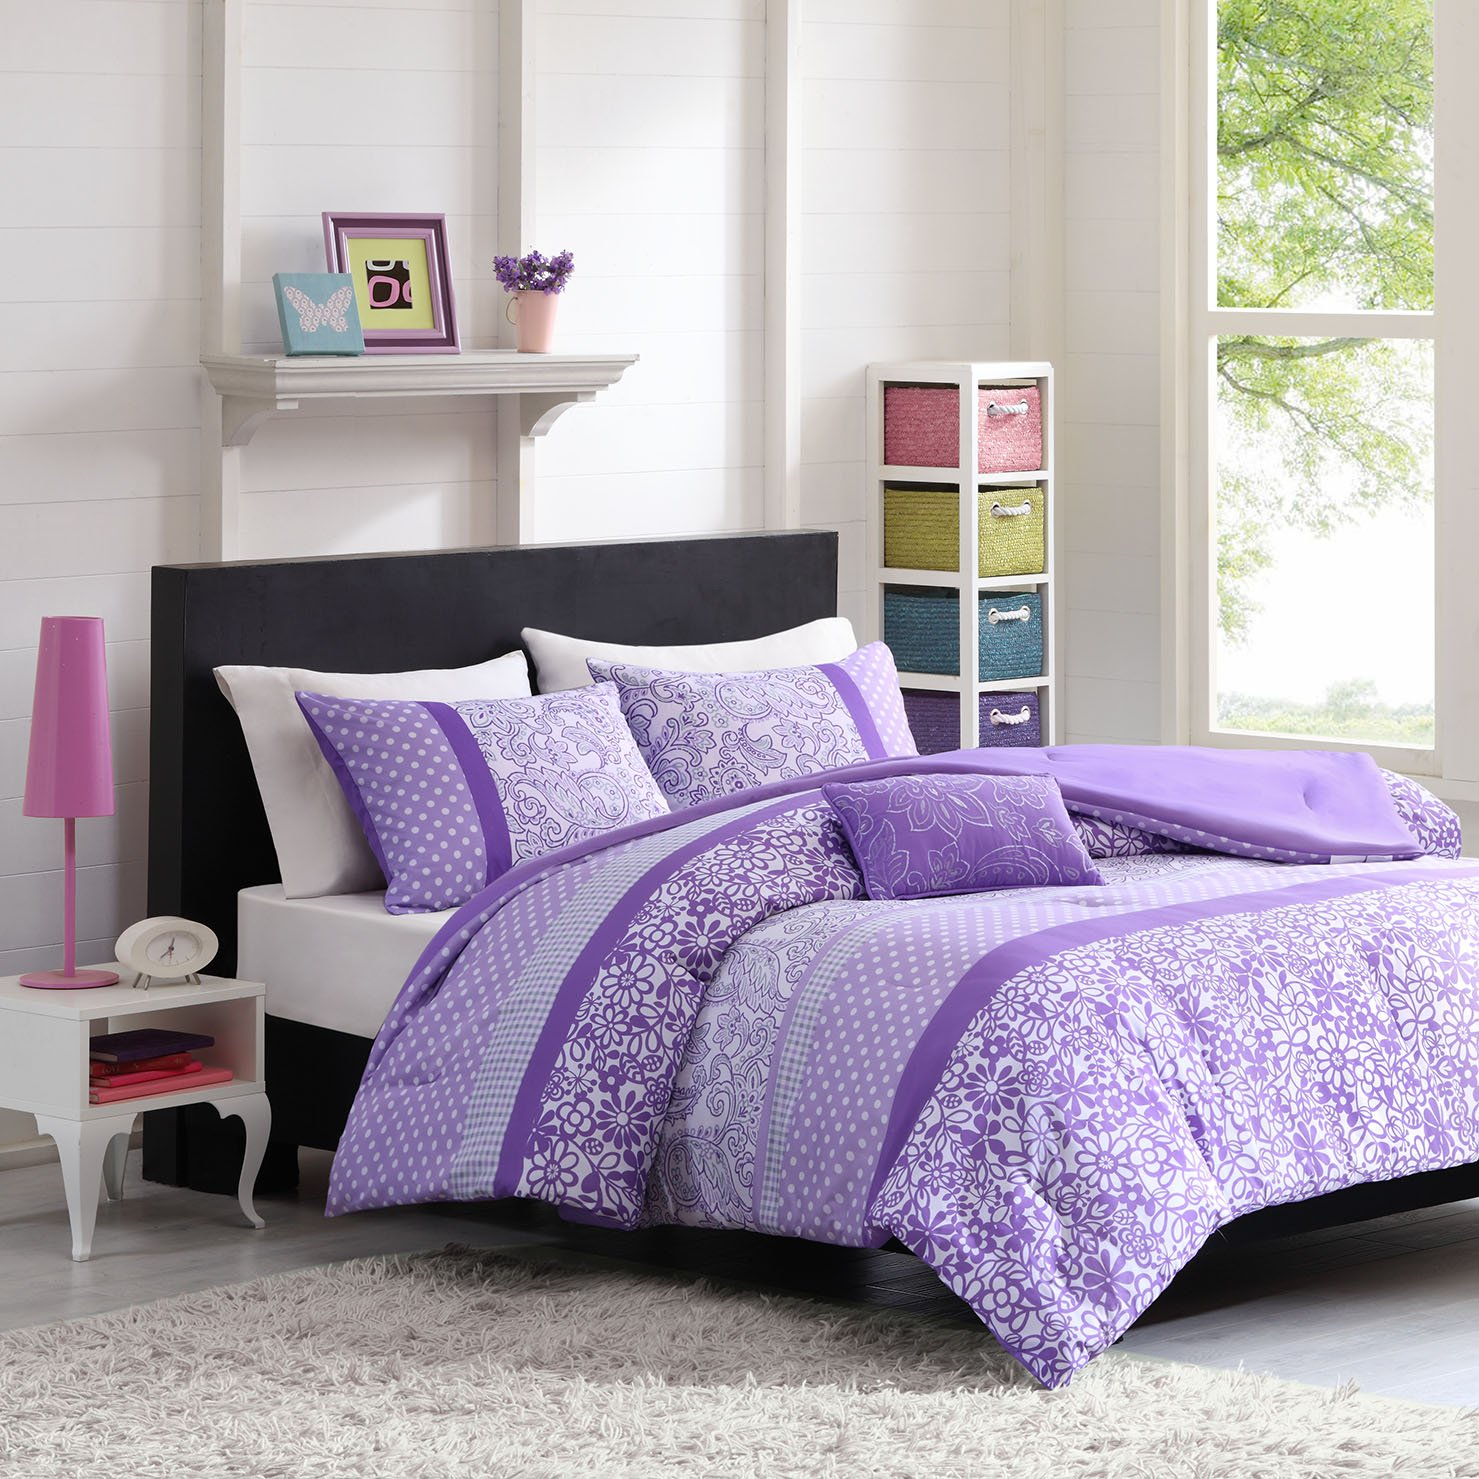 sets velvet comforter fantastic aqua awesomeorters pictures and bedroom bed archaicawful purple ruffle queen designs bedding